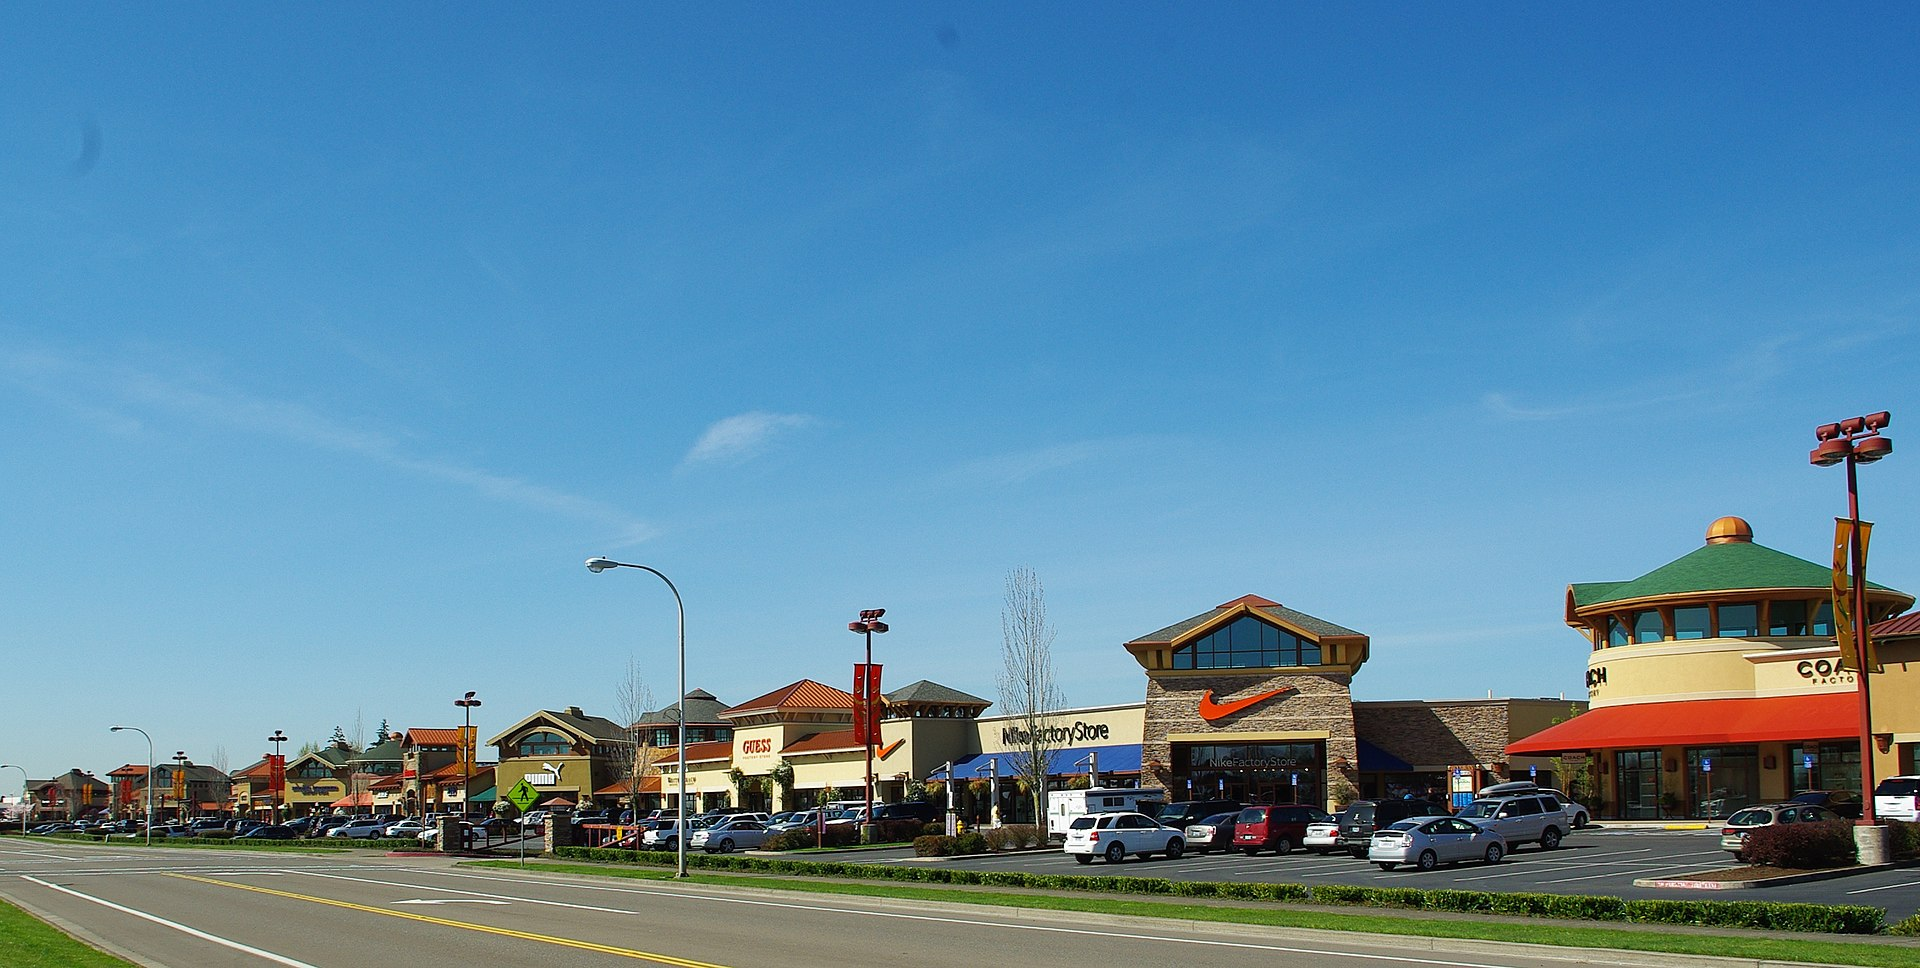 With more than stores, Woodburn Premium Outlets is the largest tax-free outlet center in the West. Big name brands, skylight-covered walkways, and beautiful Northwest architecture and landscaping make this a unique and fun shopping experience year round.